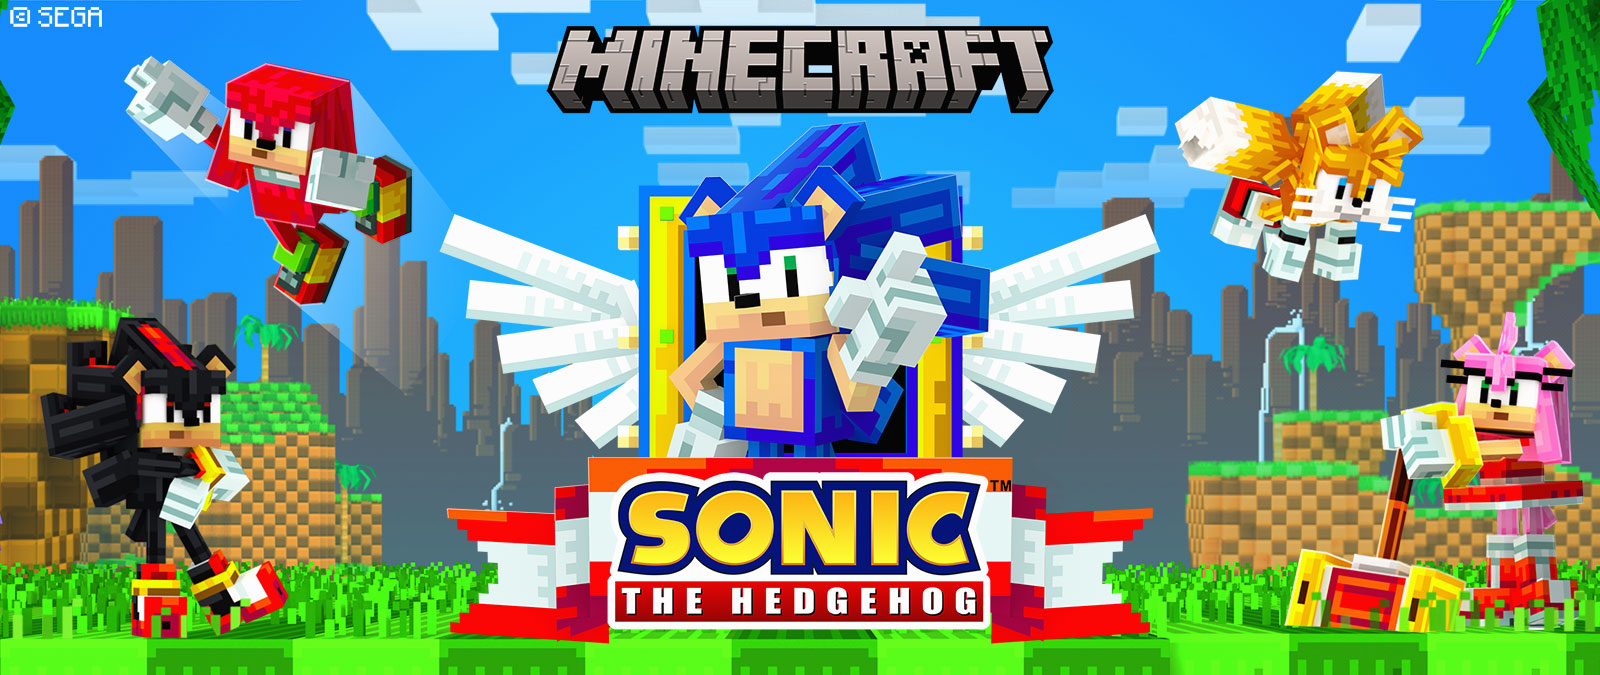 Copyright Sega. Minecraft Logo. Sonic Logo. Sonic the Hedgehog and other characters in Minecraft style on land by water.